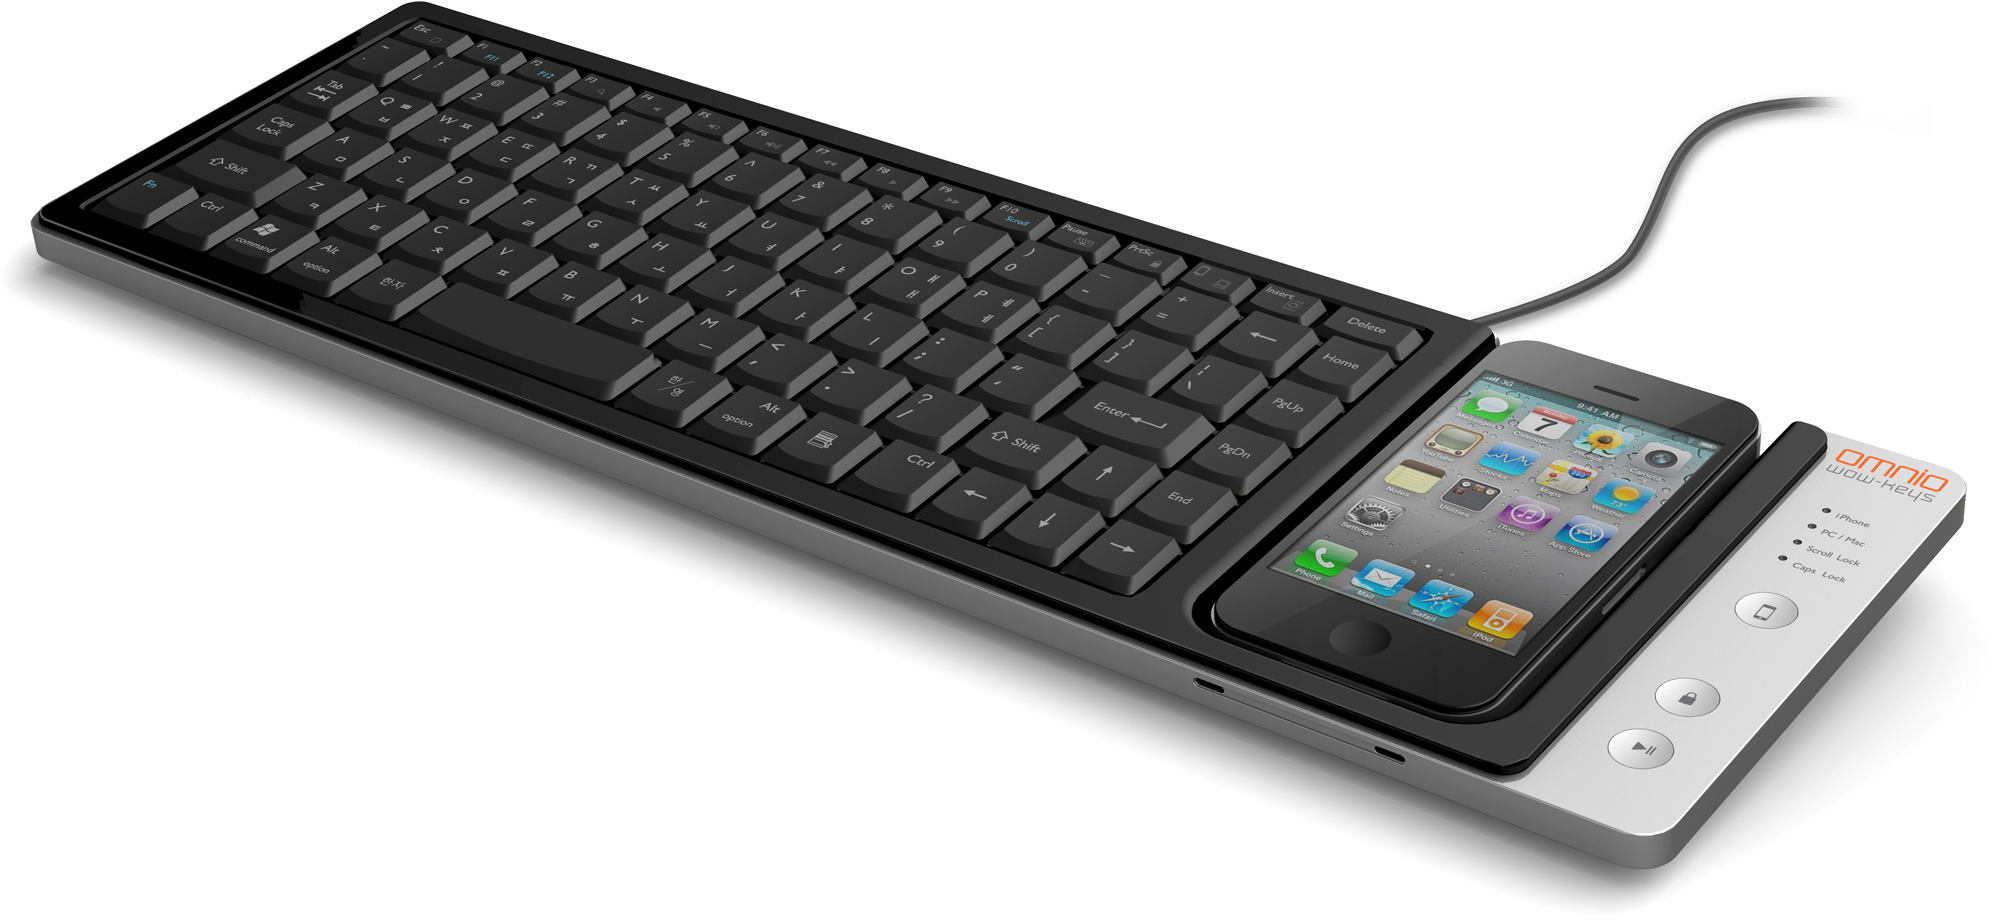 Teclado WOW-Keys com iPhone